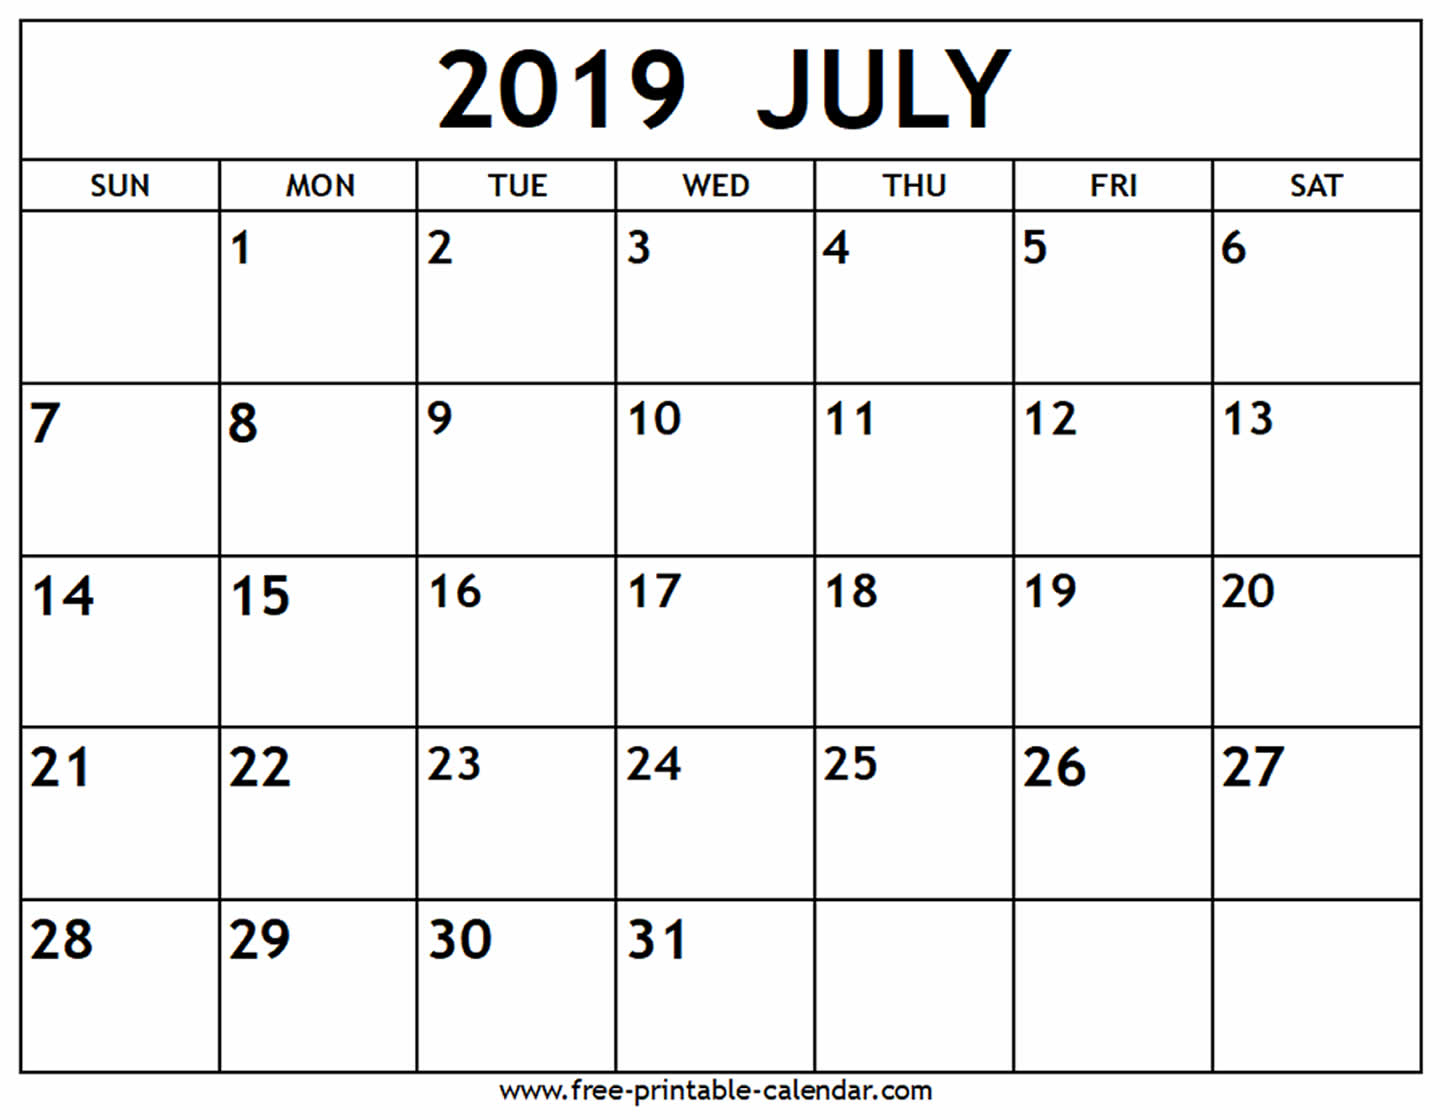 July 2019 Calendar - Free-Printable-Calendar with Blank July Monthly Calendar